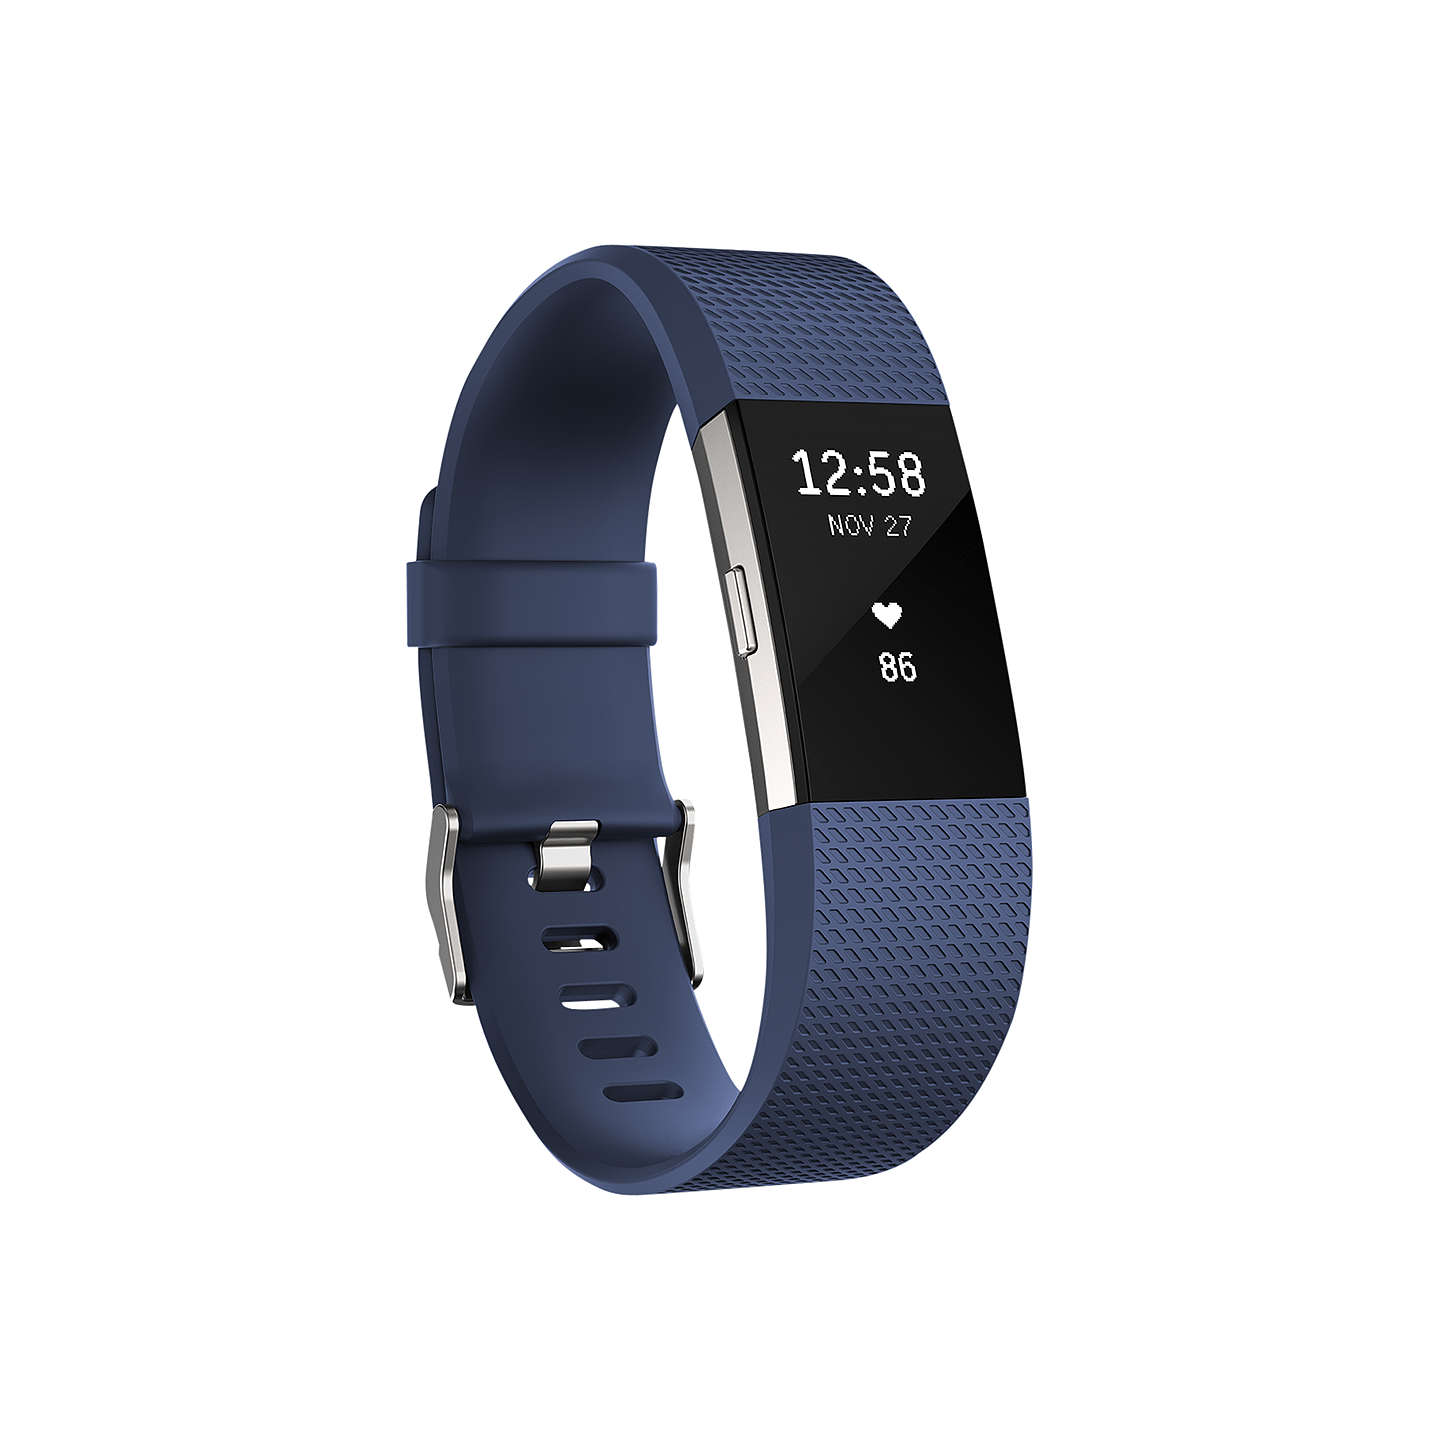 BuyFitbit Charge 2 Heart Rate and Fitness Tracking Wristband, Large, Blue Online at johnlewis.com